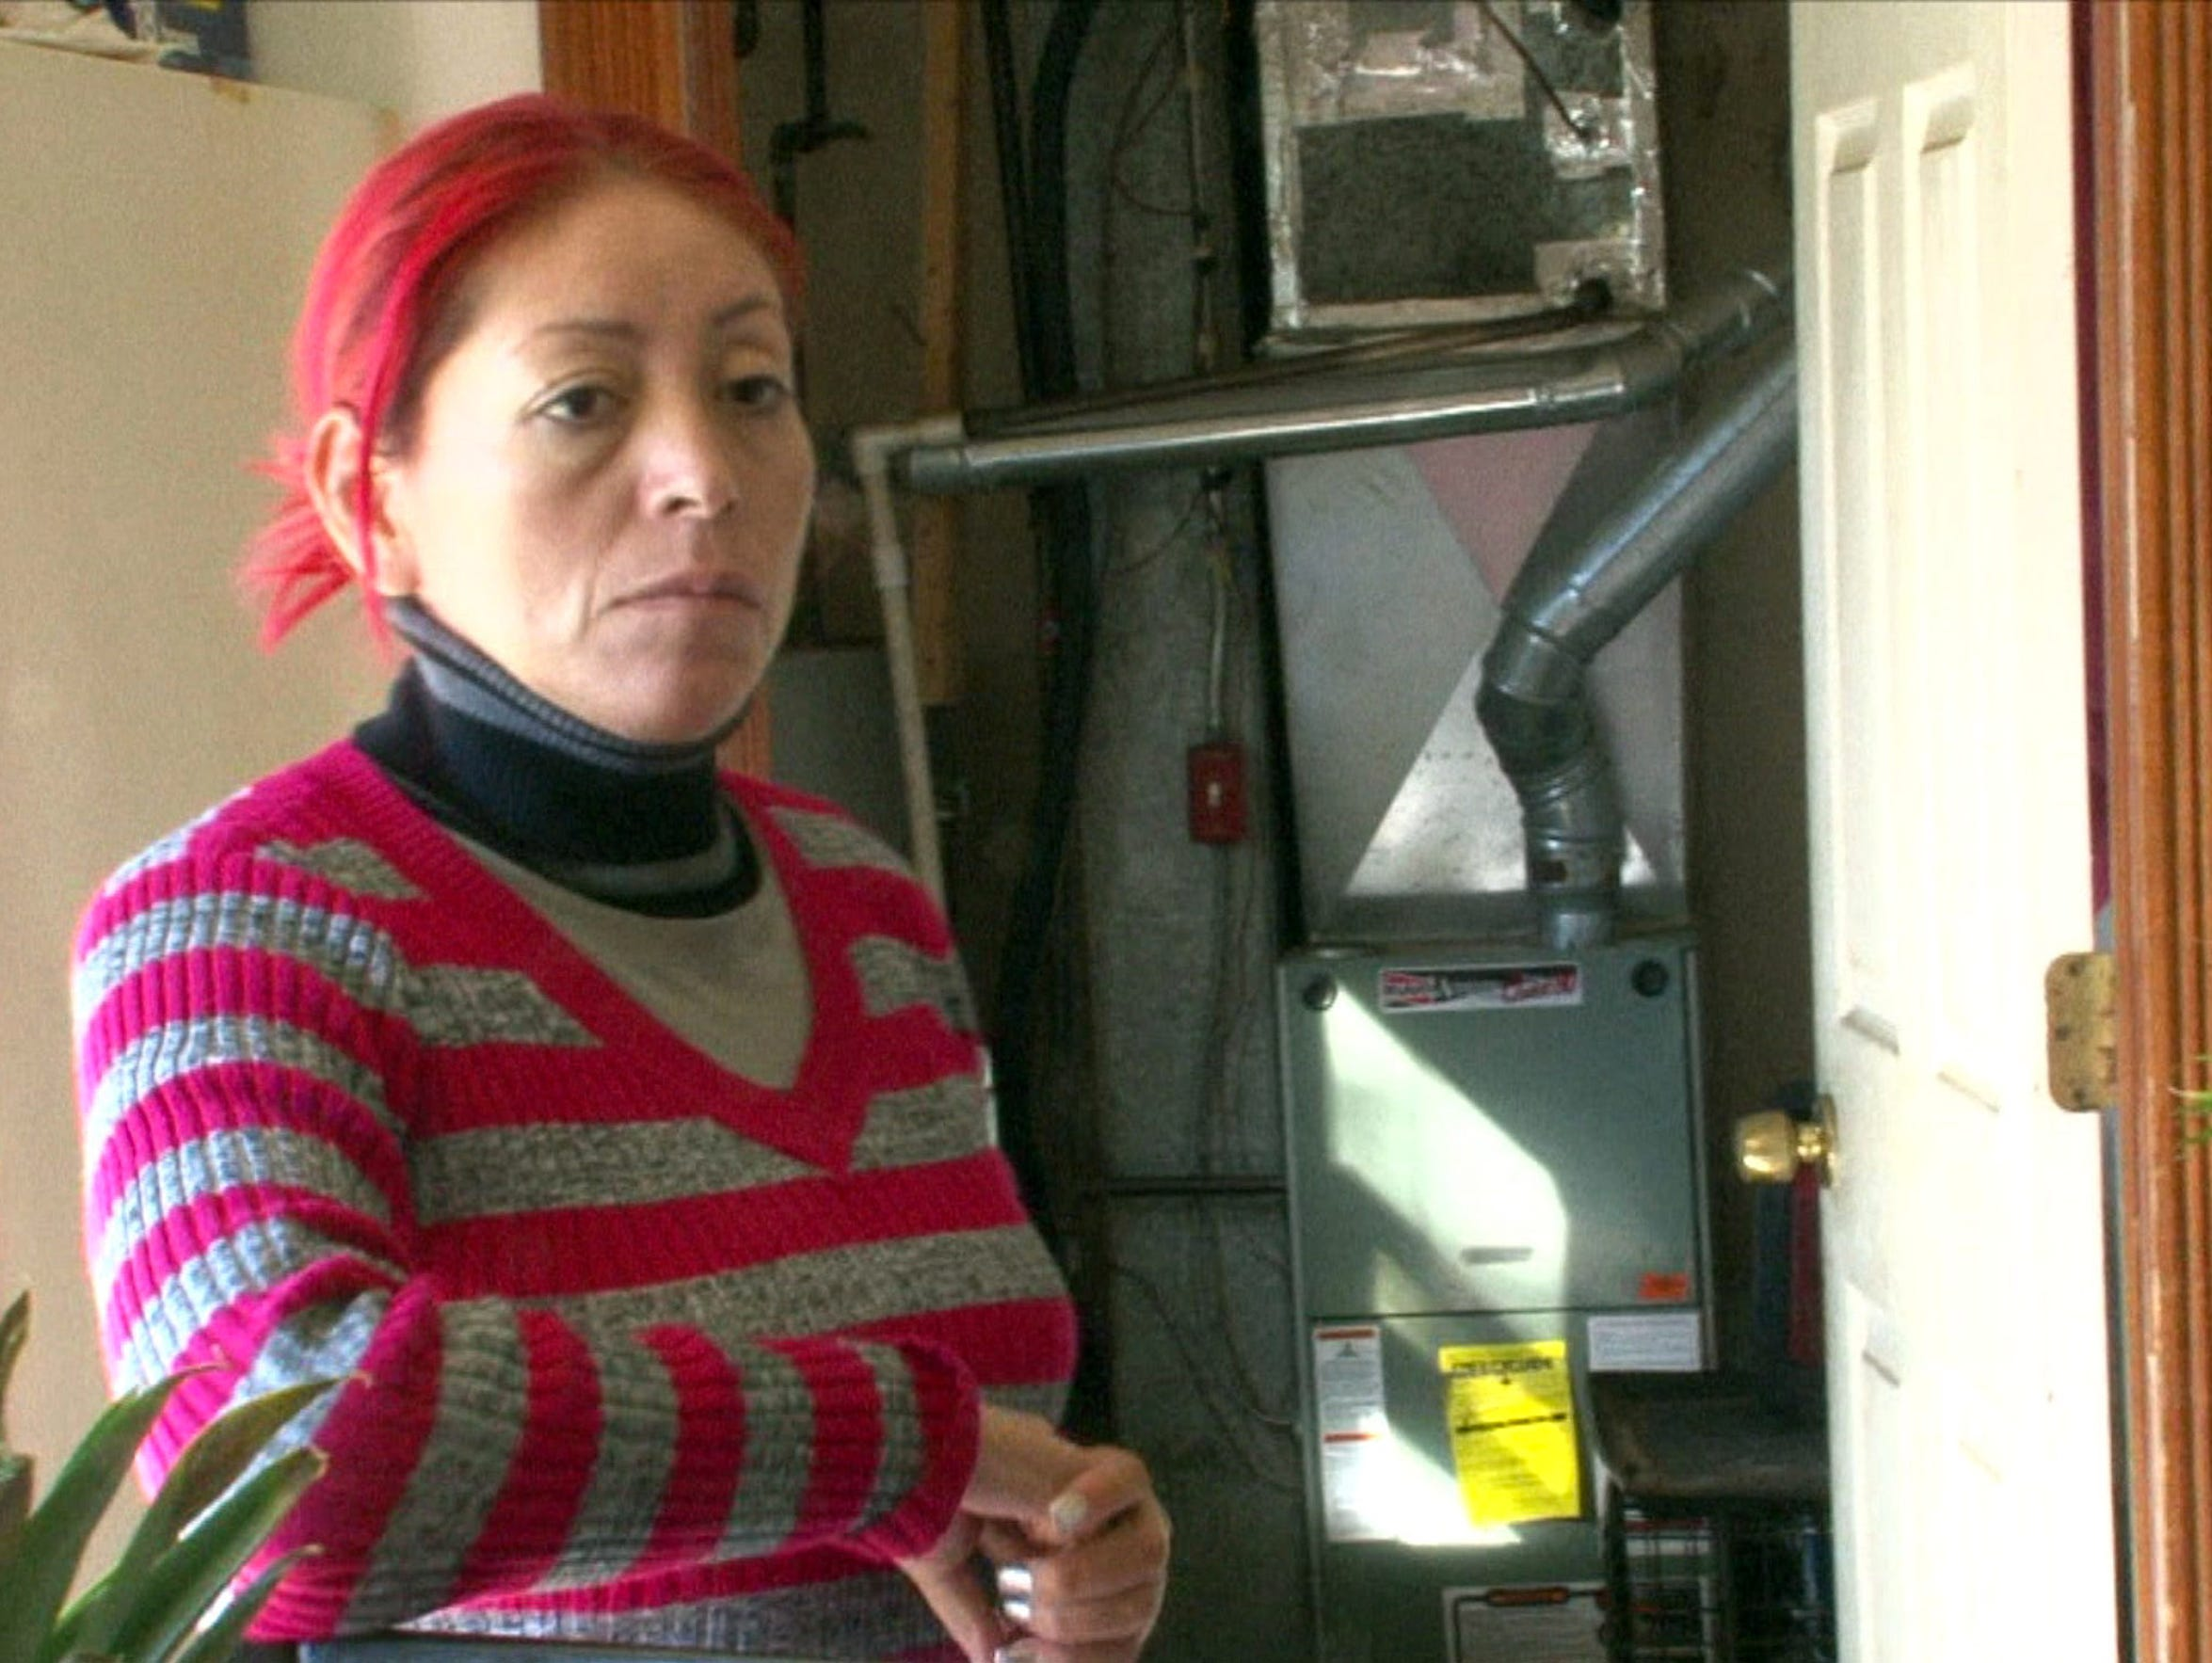 Marisol Hernandez is shown in the Lakewood home she